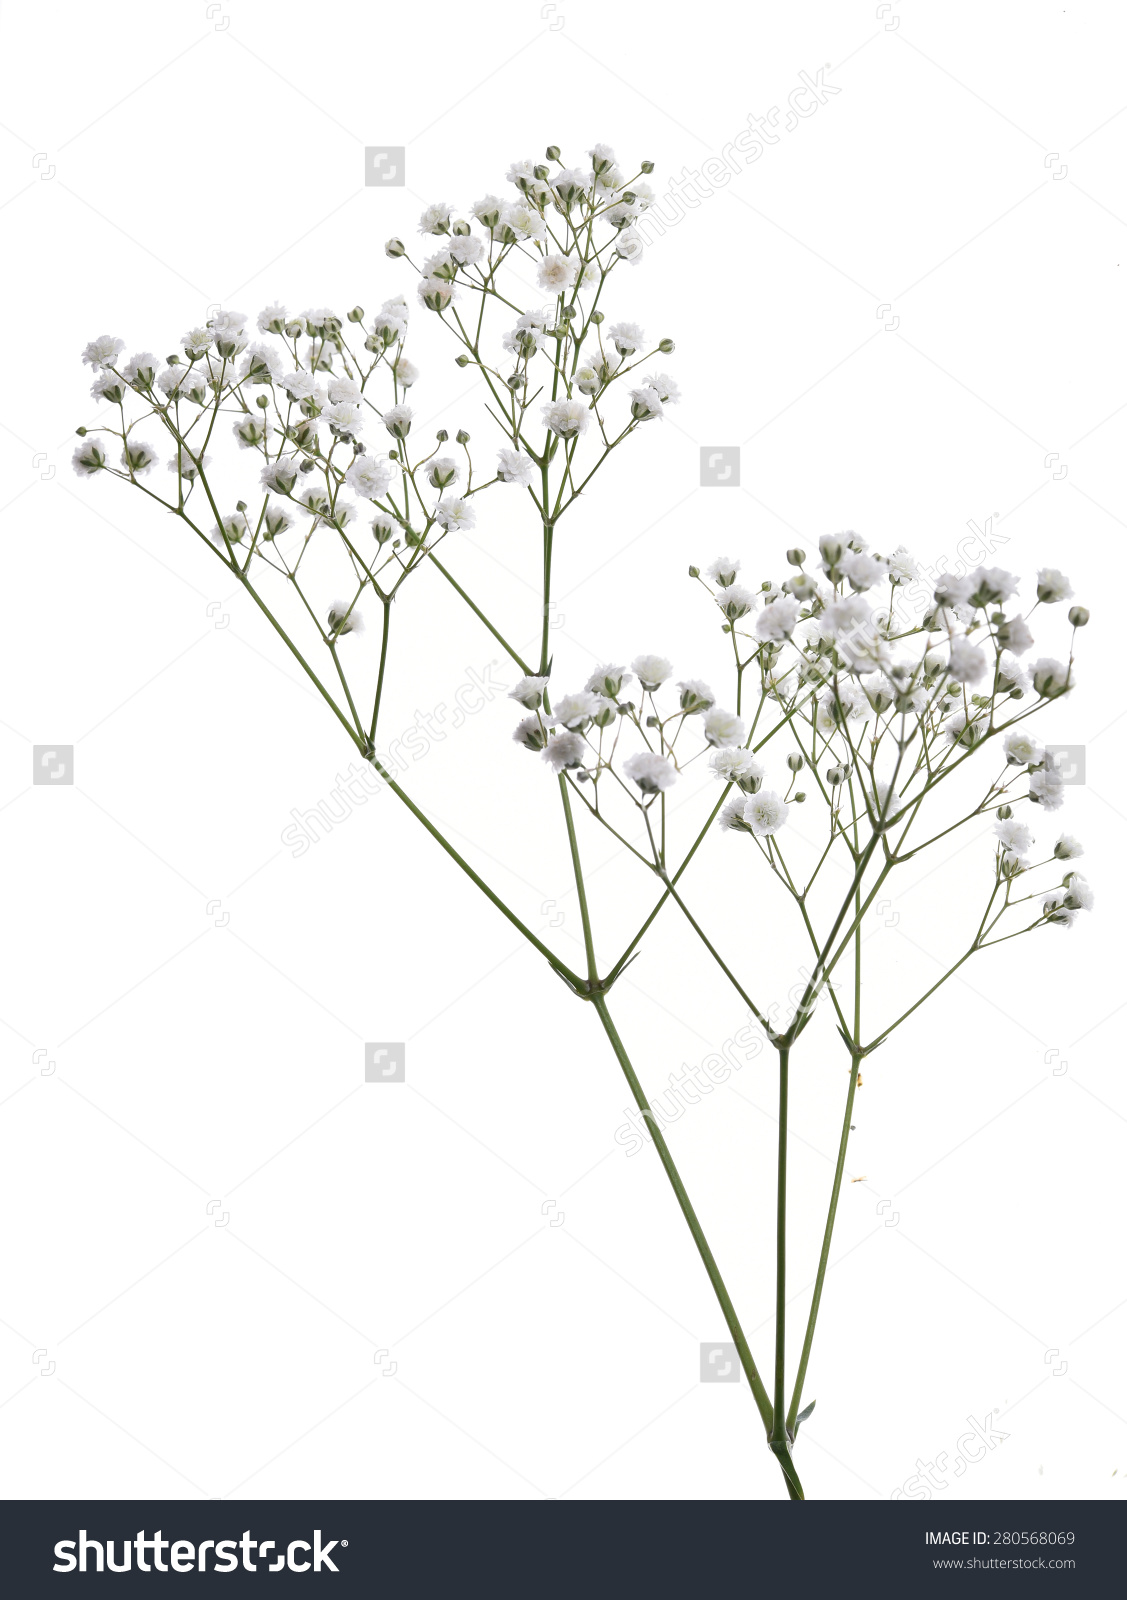 Gypsophila Babysbreath Flowers Light Airy Masses Stock Photo.